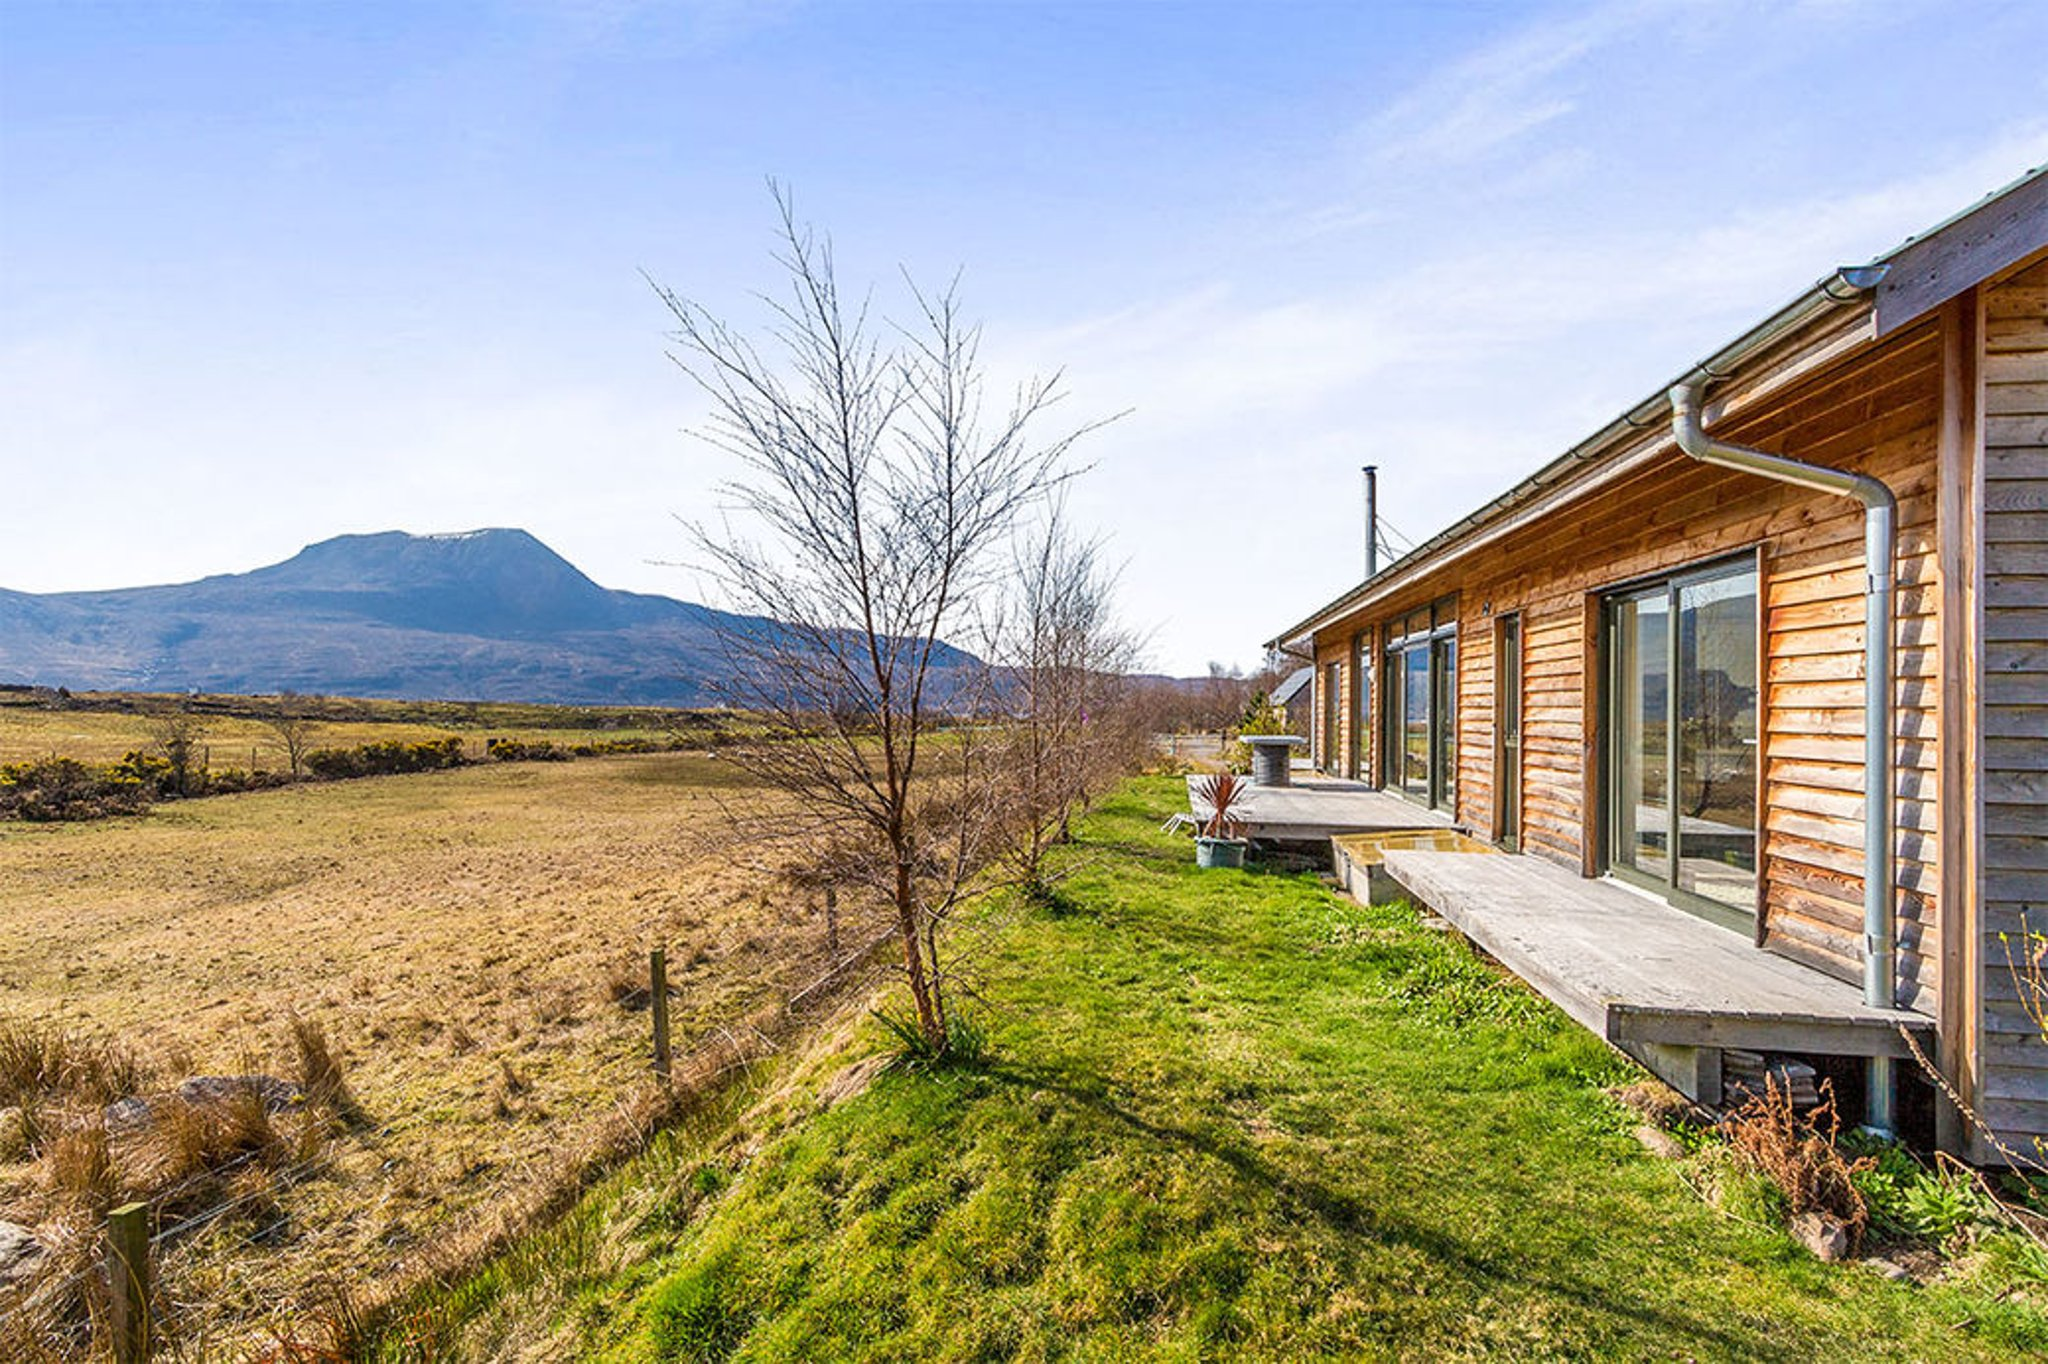 Grand designs: inside an eco build home on the shores of ...